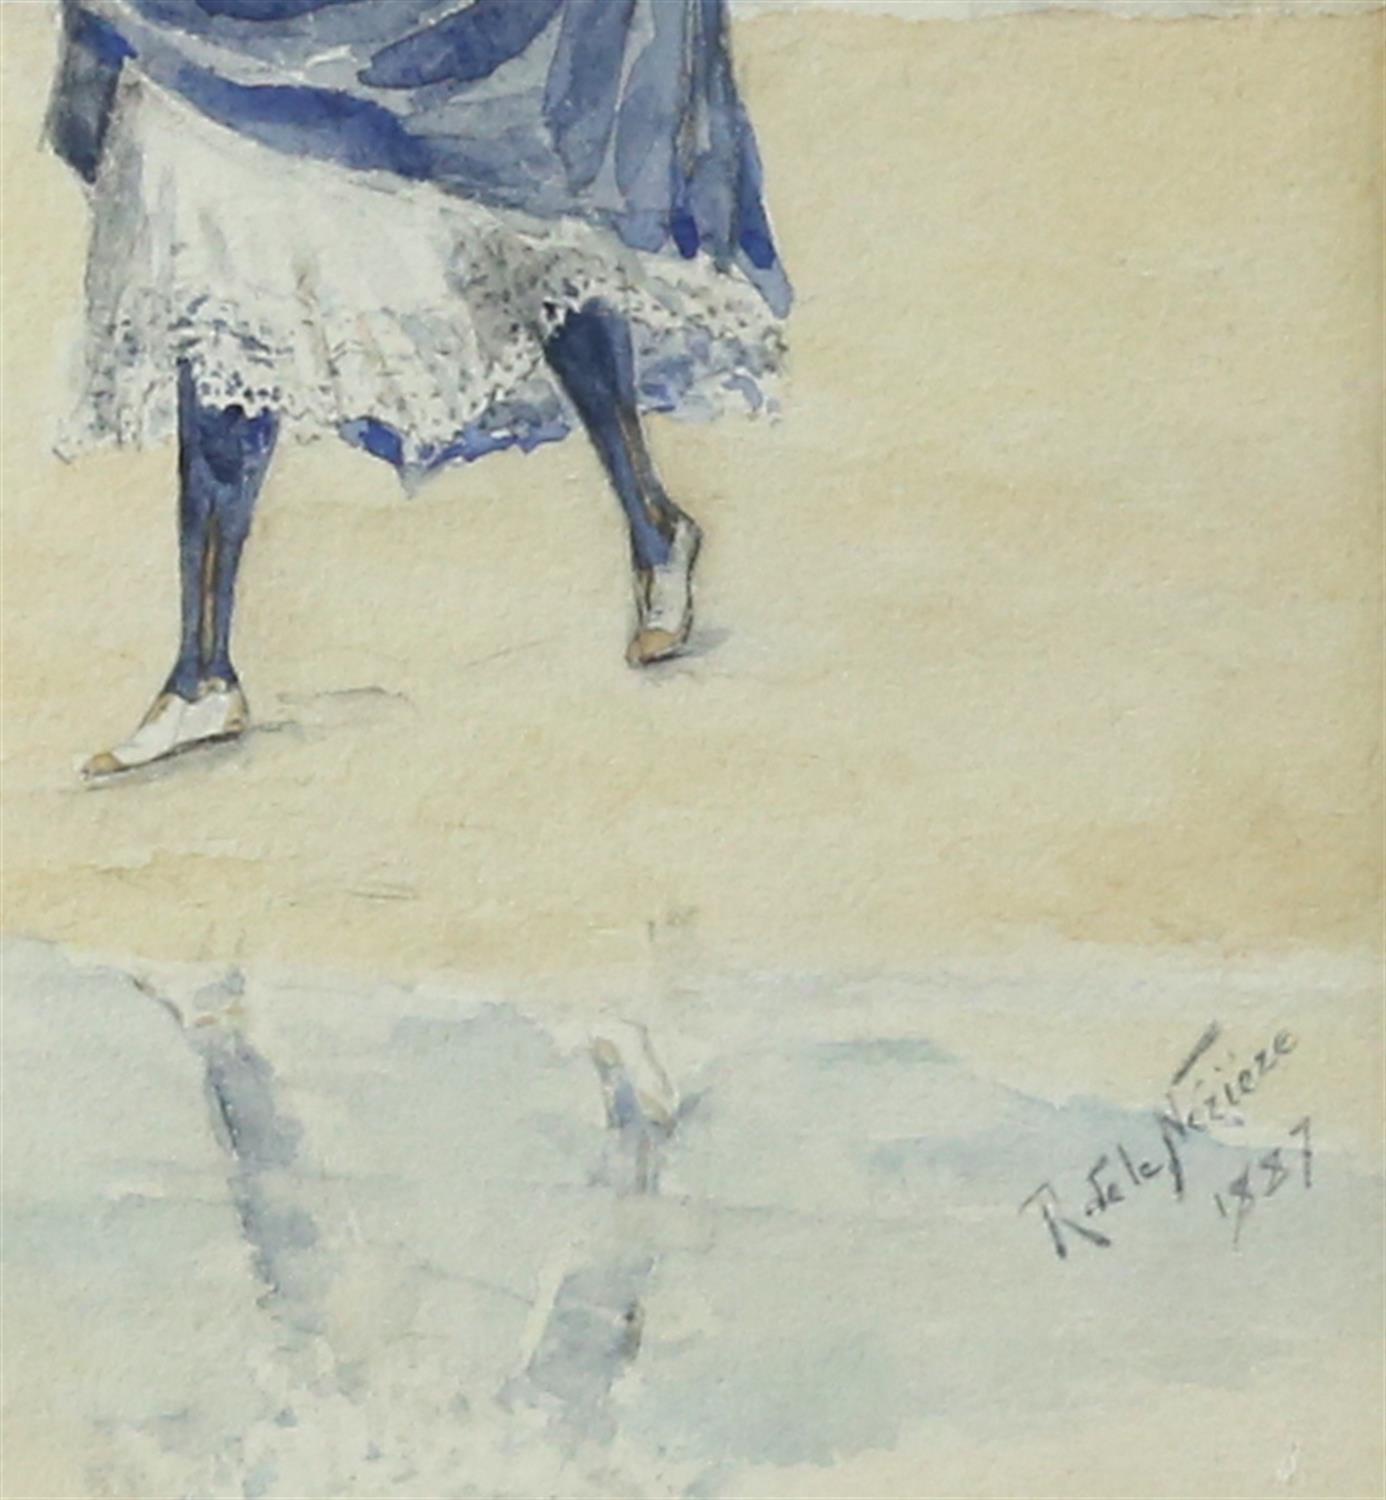 Raymond de la Neziere, French 1865-1953, lady in a long dress on a beach, signed and dated 1887, - Image 3 of 3